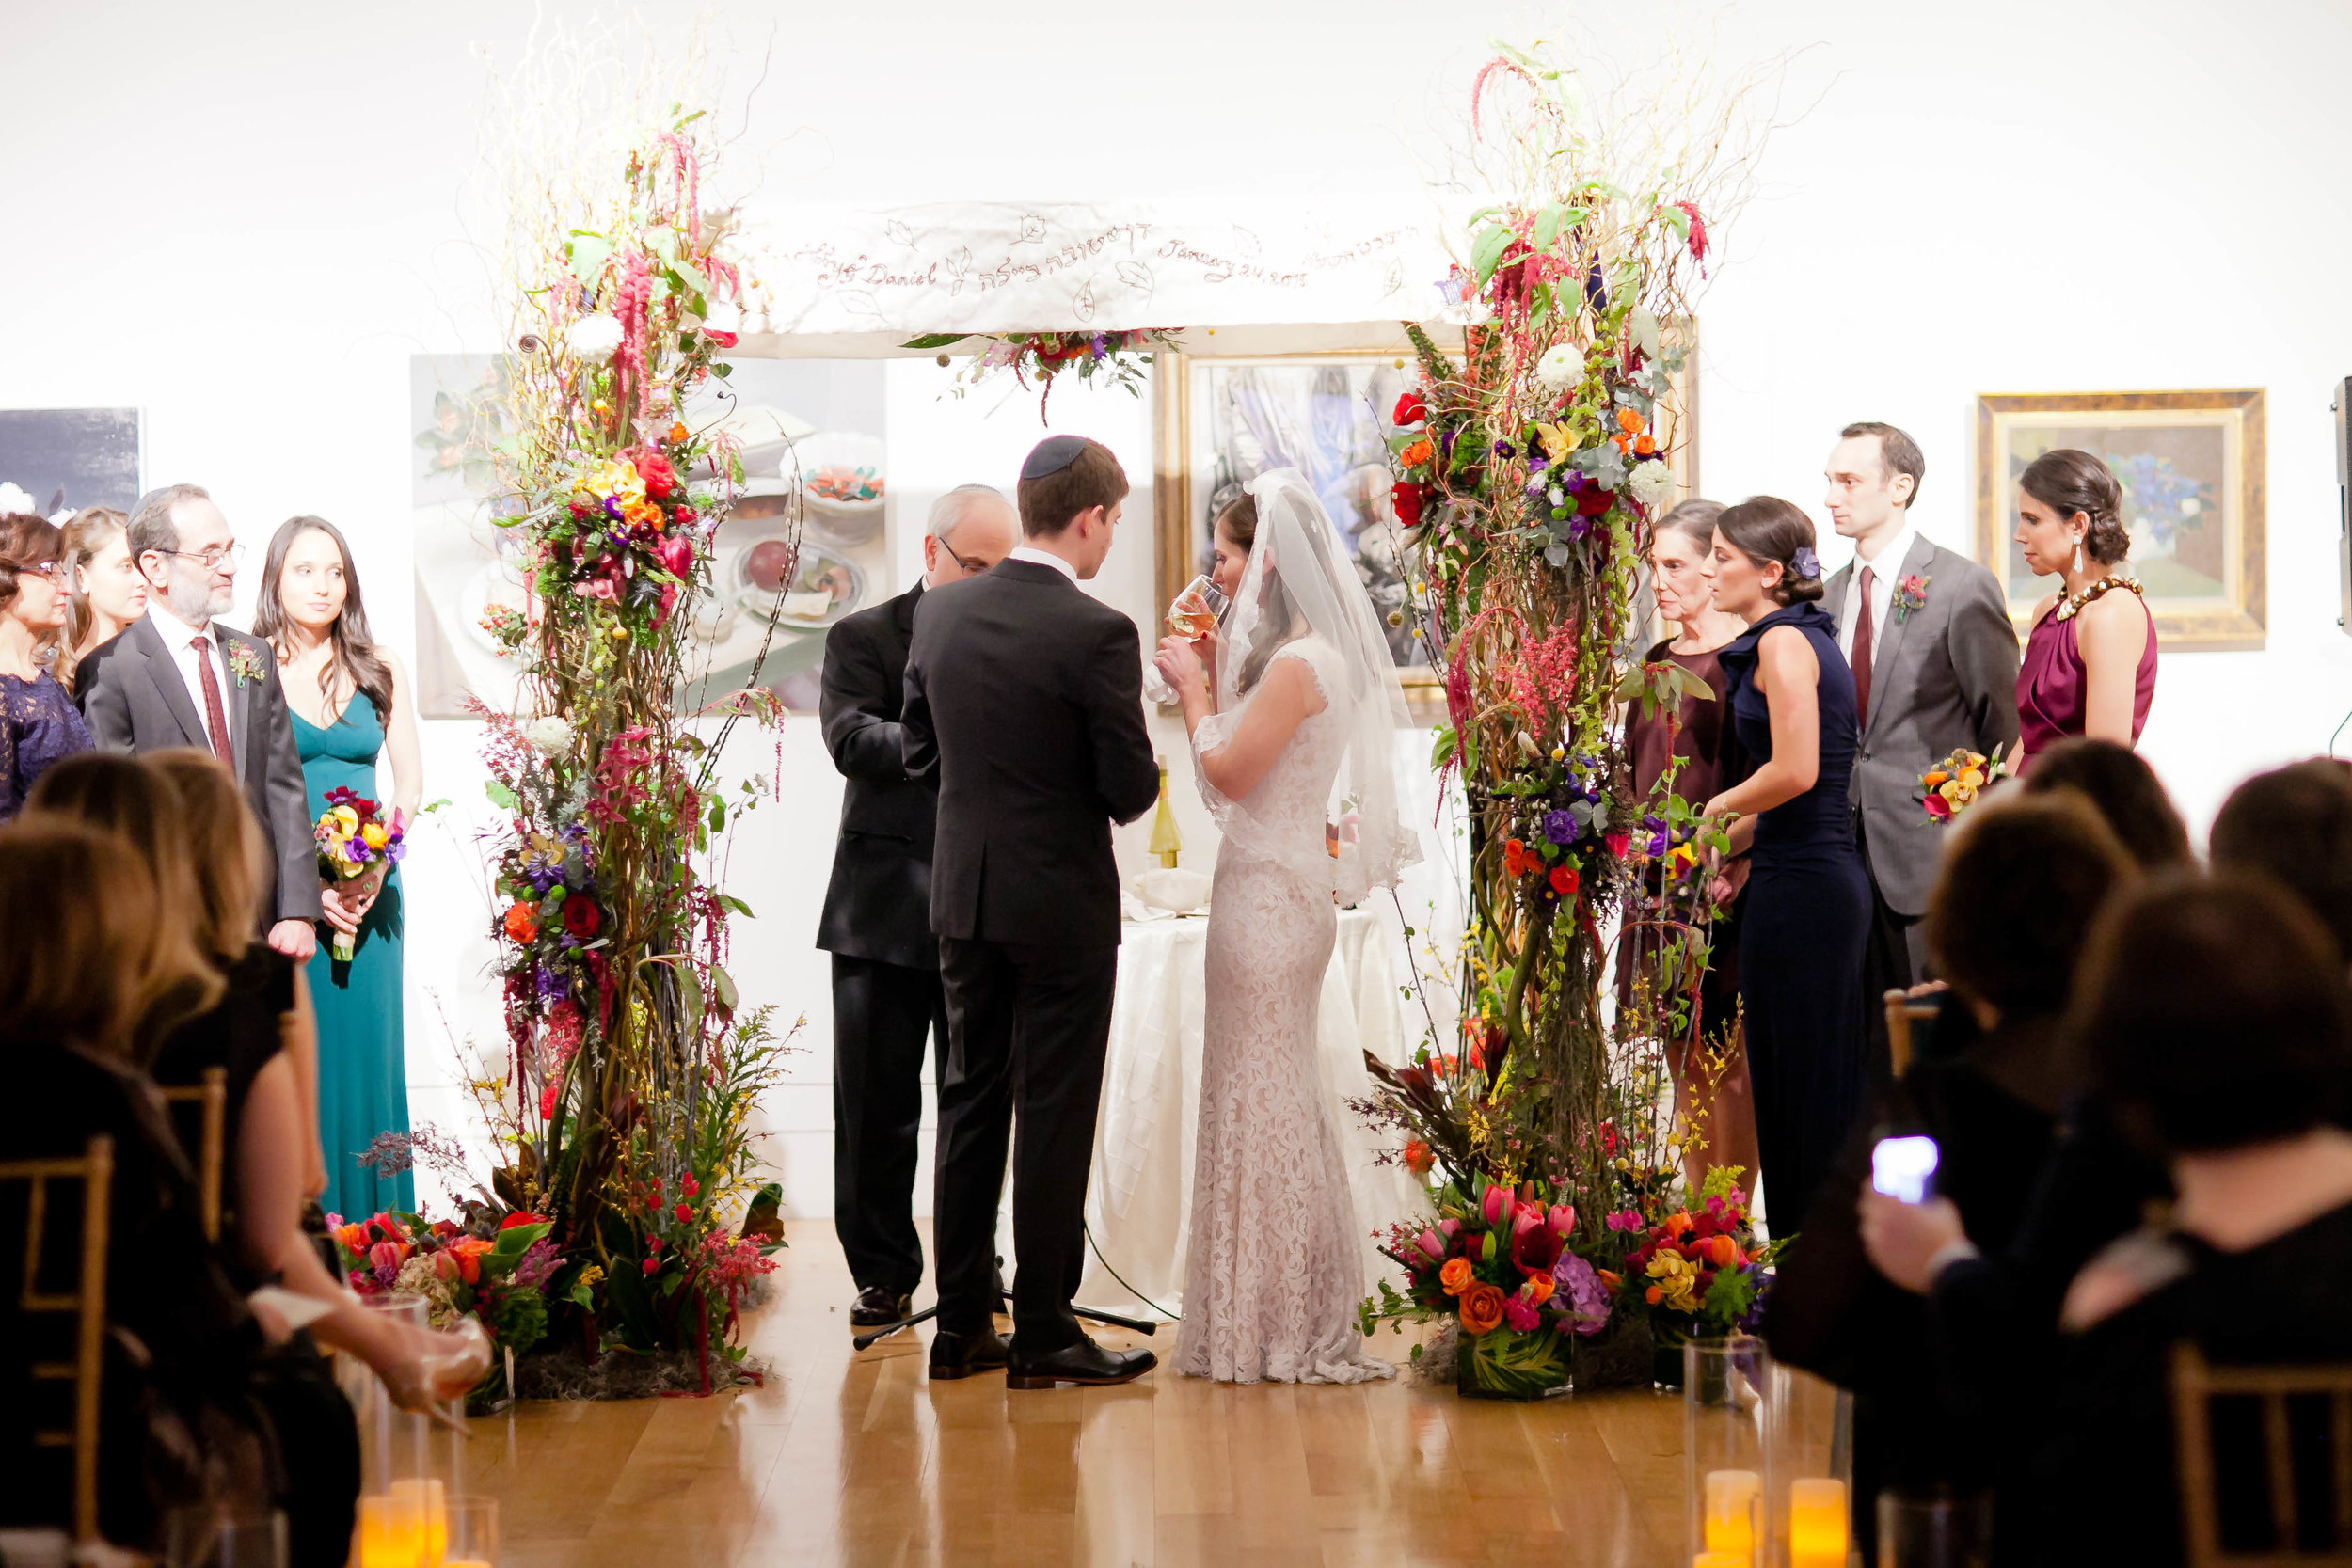 Chuppah - Willow Pole Chuppah with Very Substantial Flowers and Additional Willow (1,575)